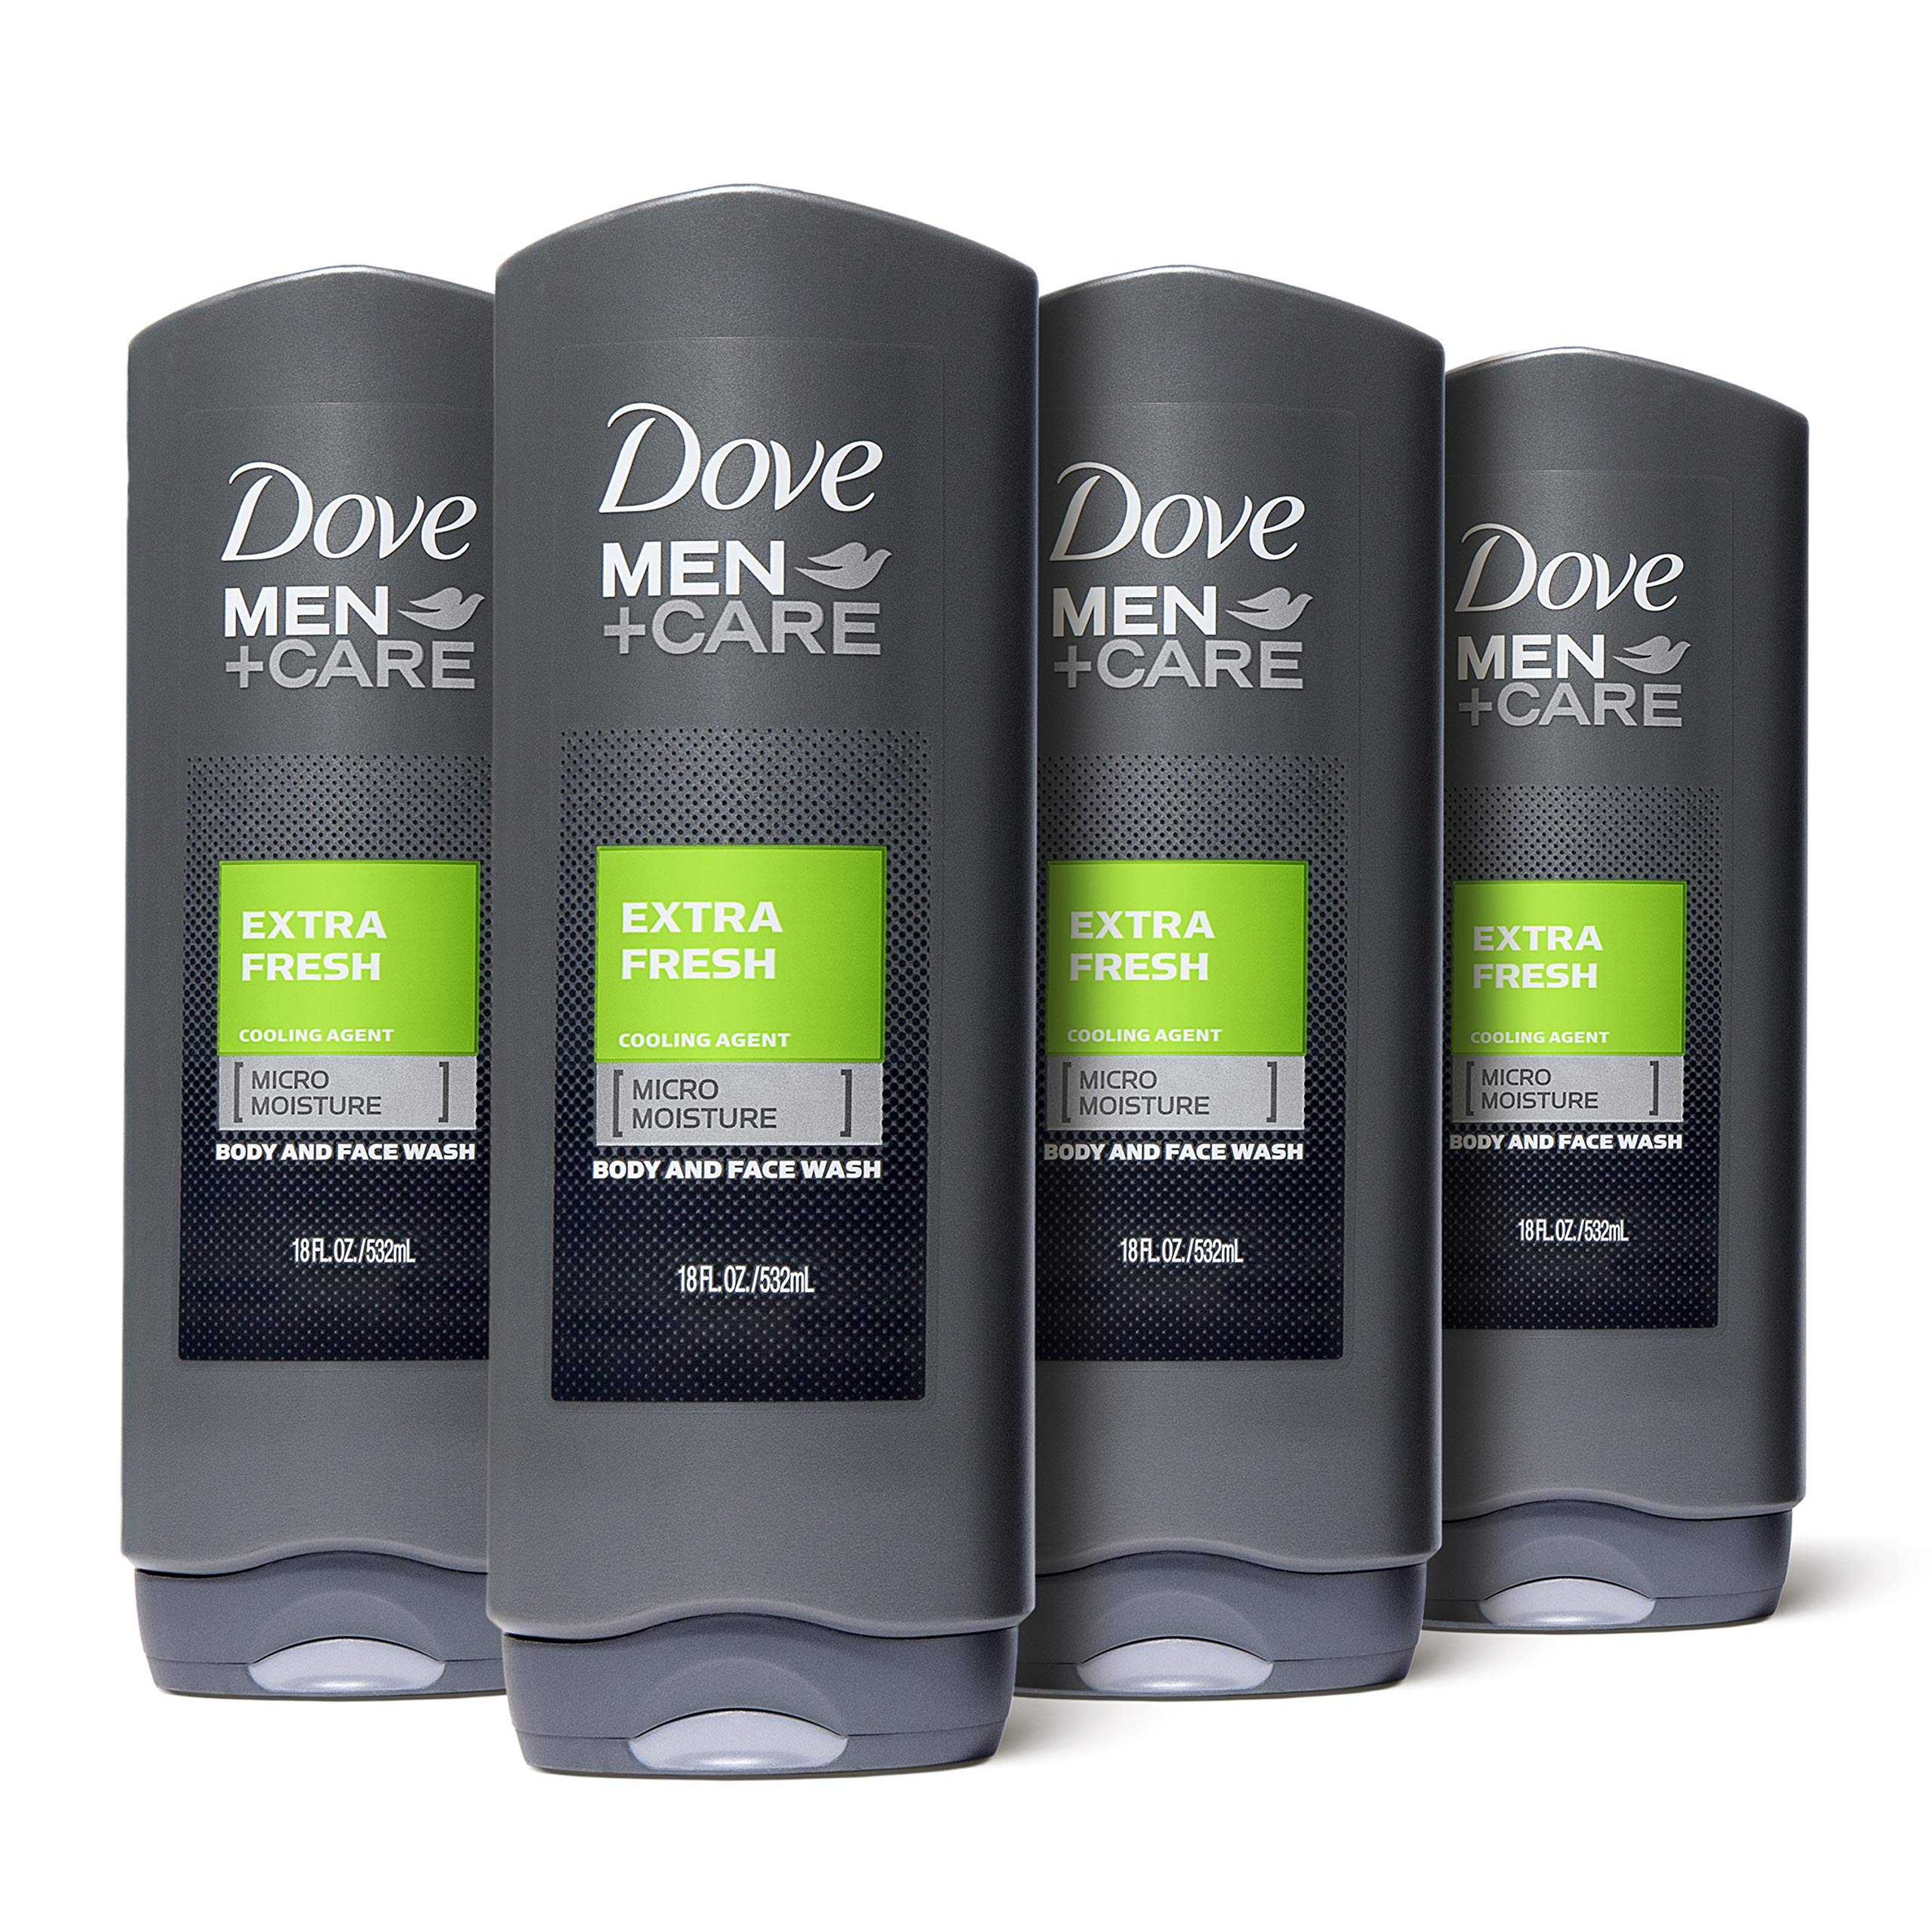 Dove Men Care Body And Face Wash Extra Fresh 18 Oz 4 Count For Dry Skin Effectively Washes Away Bacteria While Nourishing Your Skin Buy Online In Colombia Dmc Bar Body